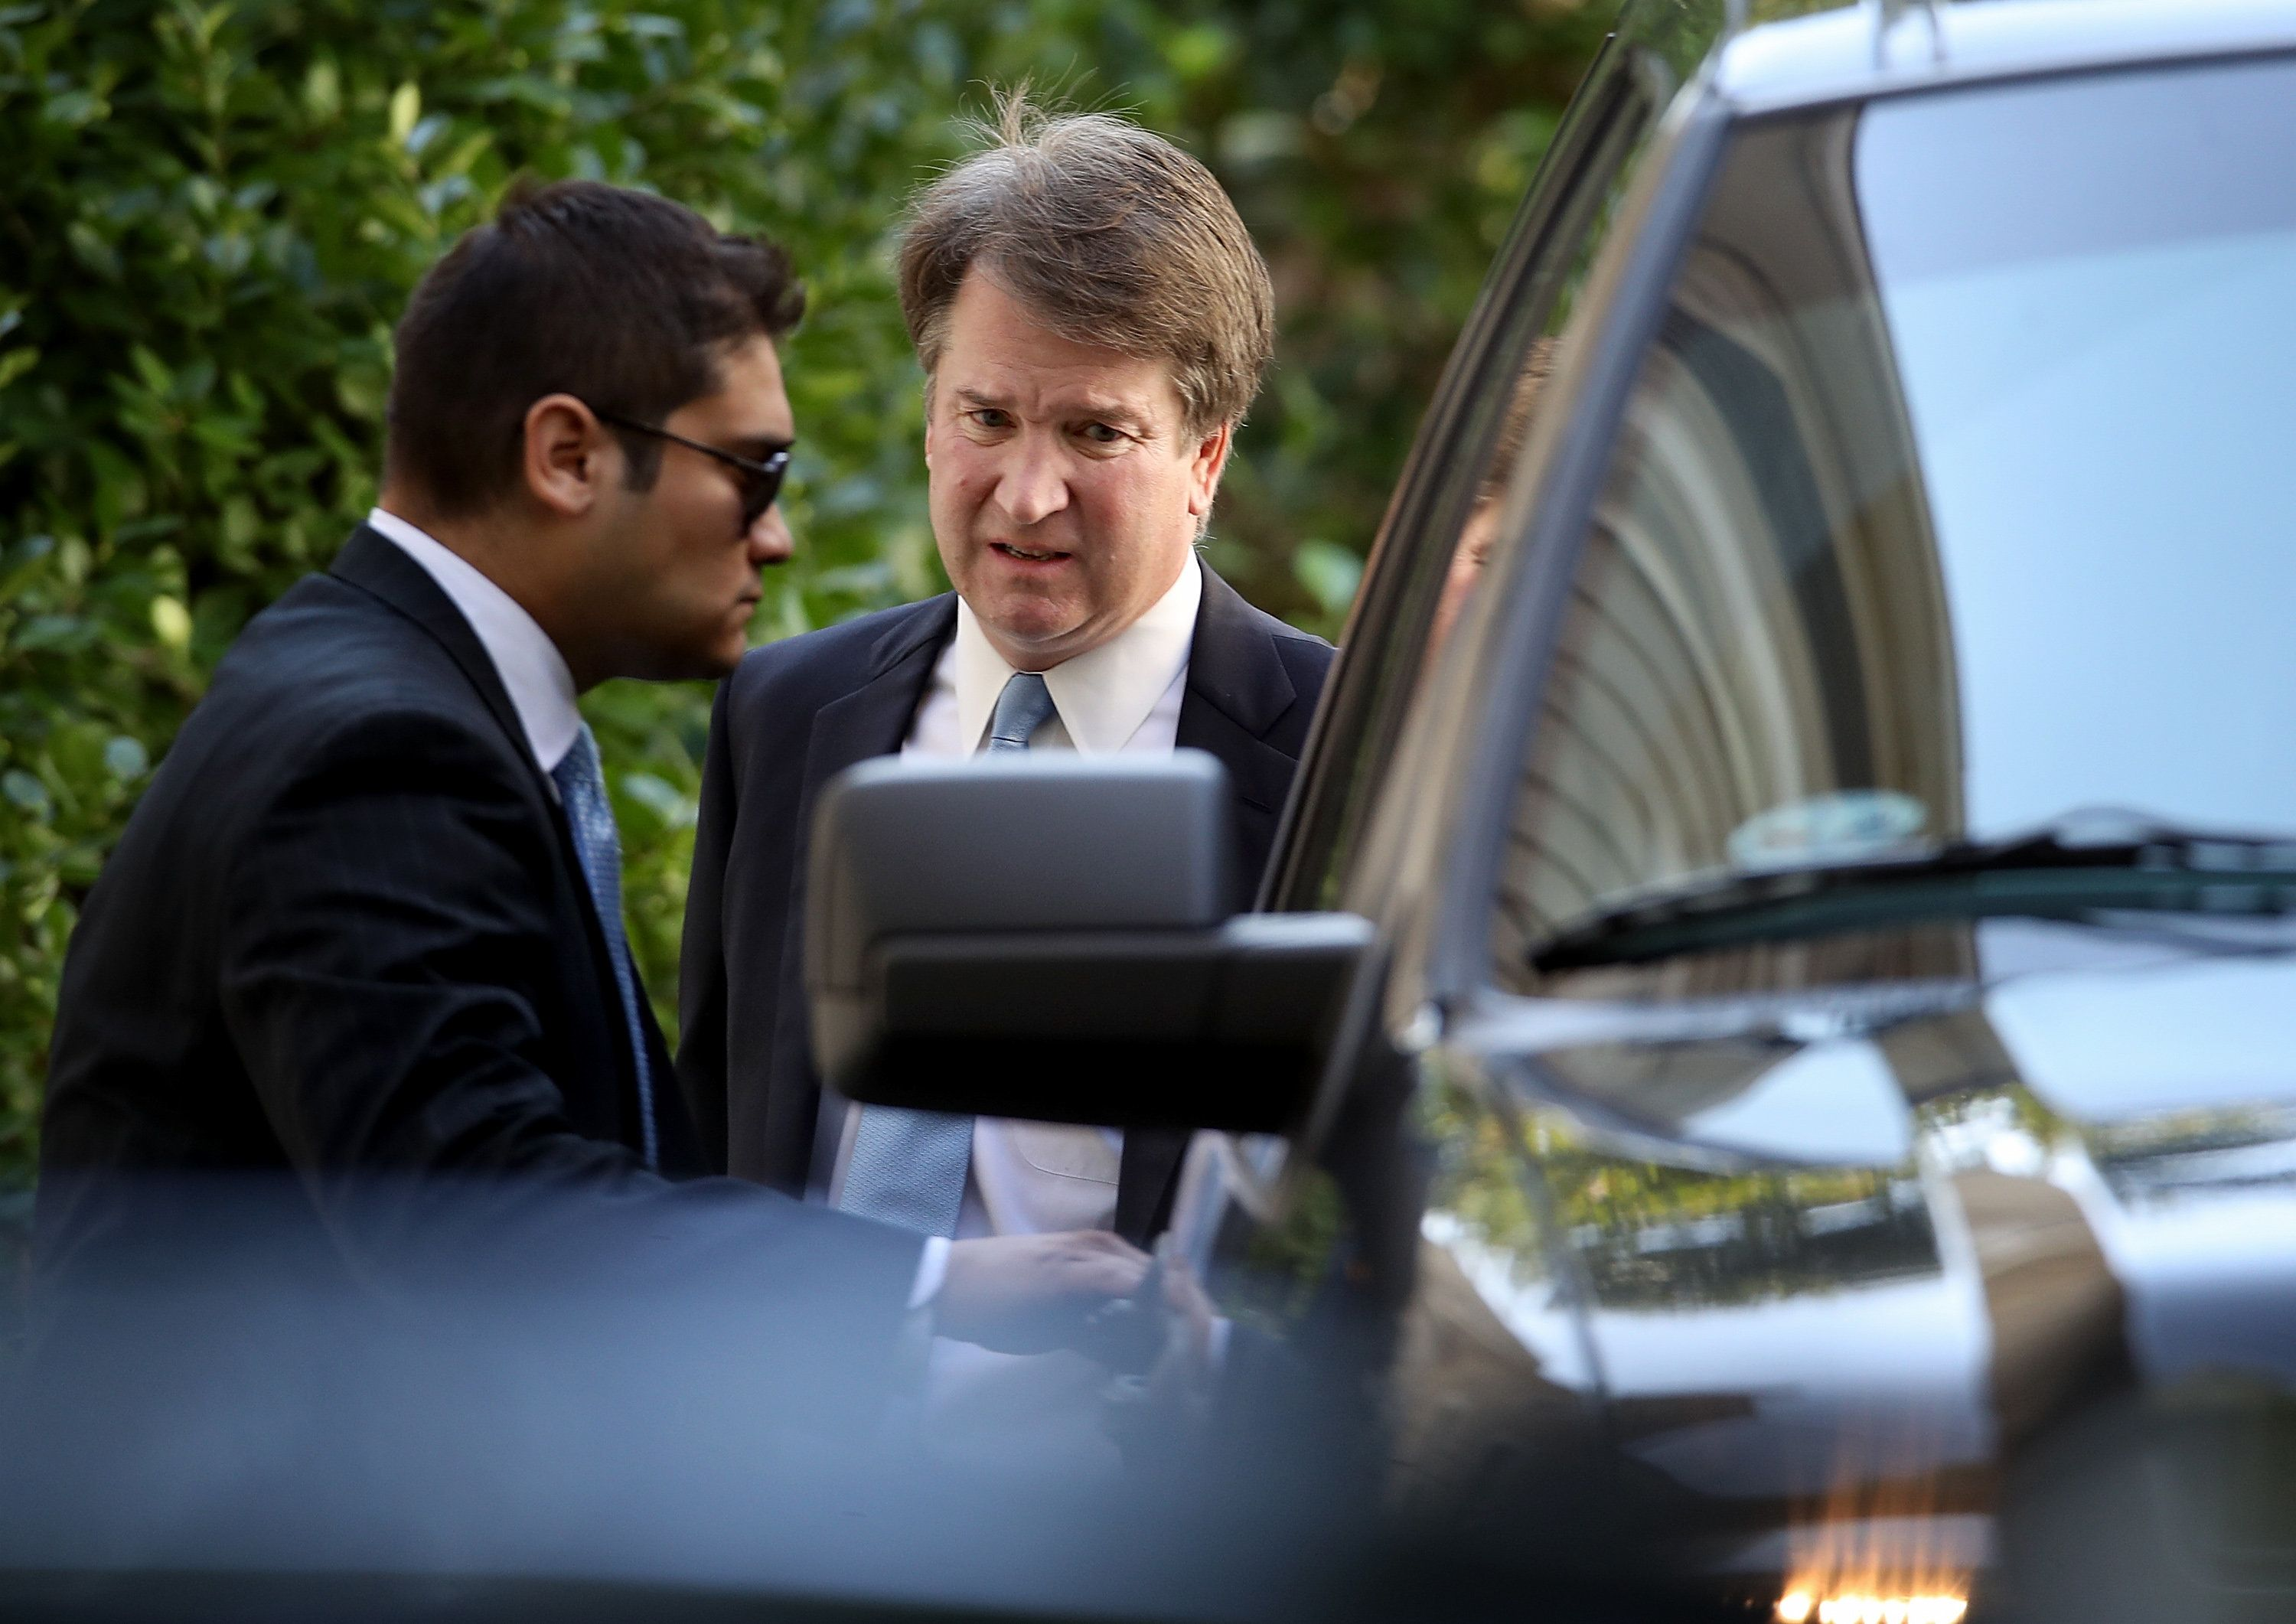 Supreme Court nominee Judge Brett Kavanaugh (R) leaves his home 19